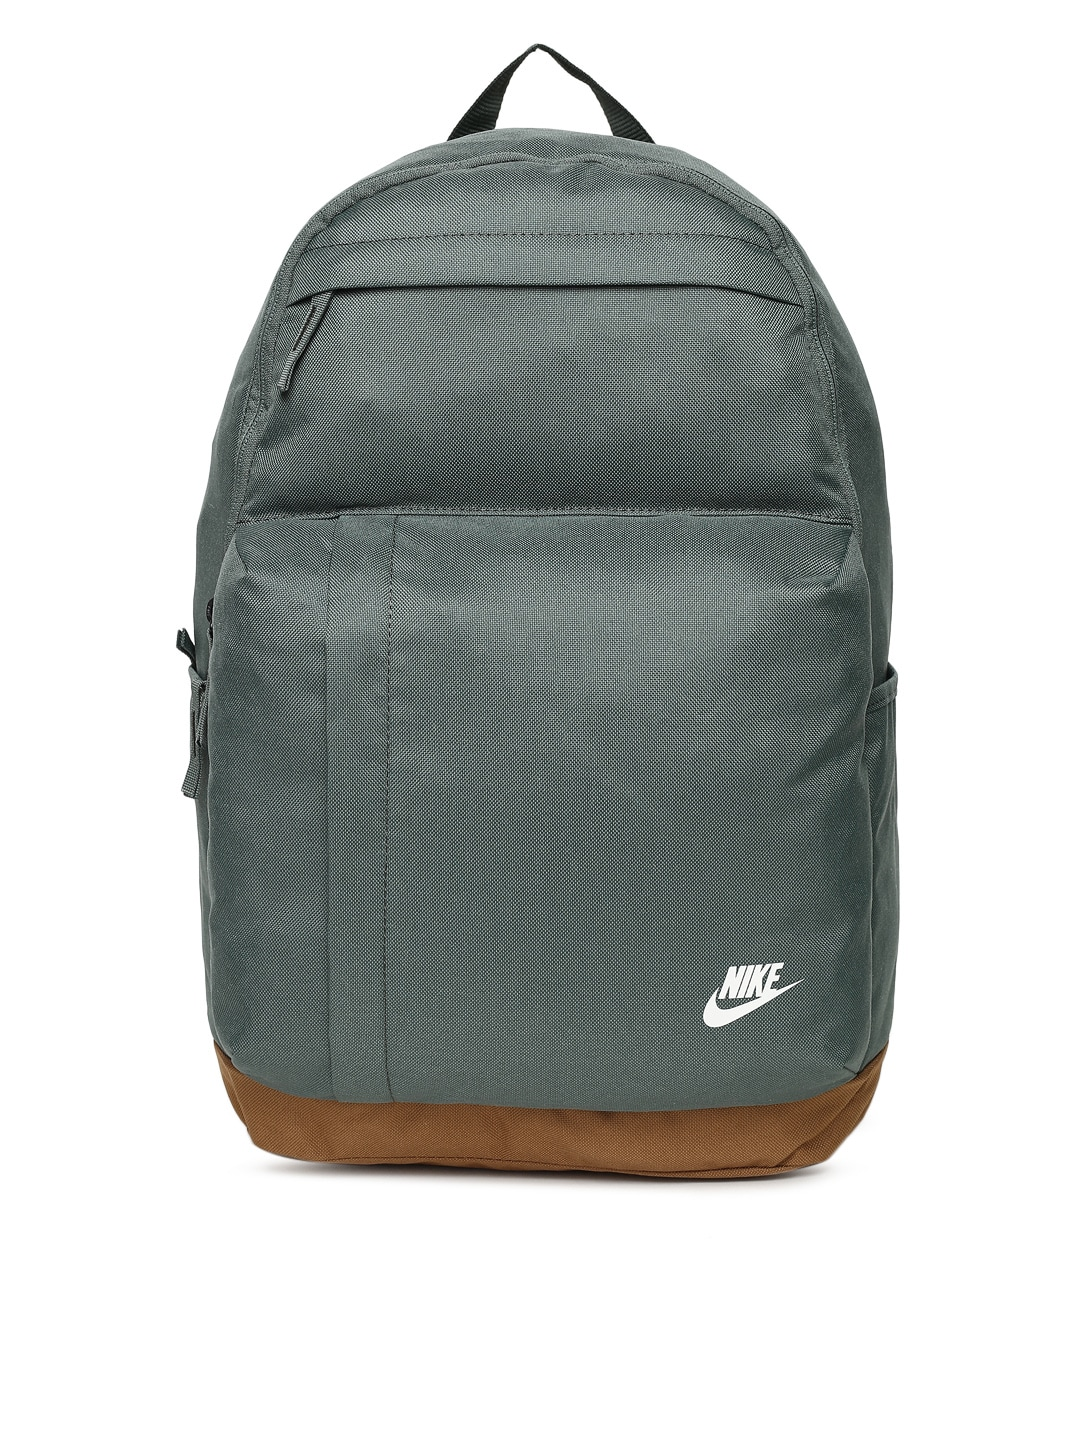 Nike Bags - Buy Nike Bag for Men 4acd06577482b